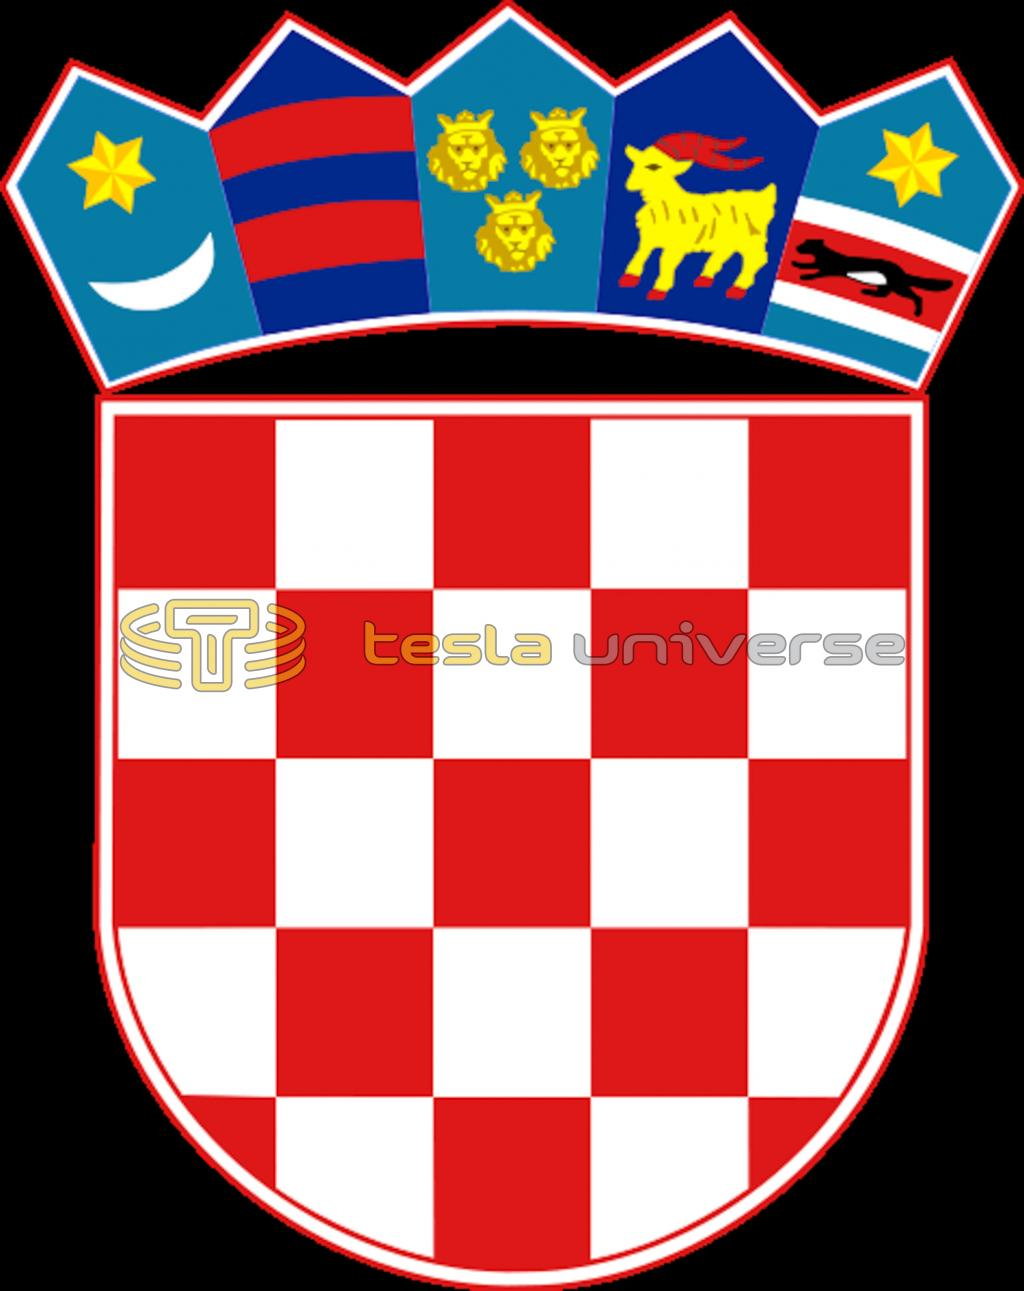 The Croatian coat of arms